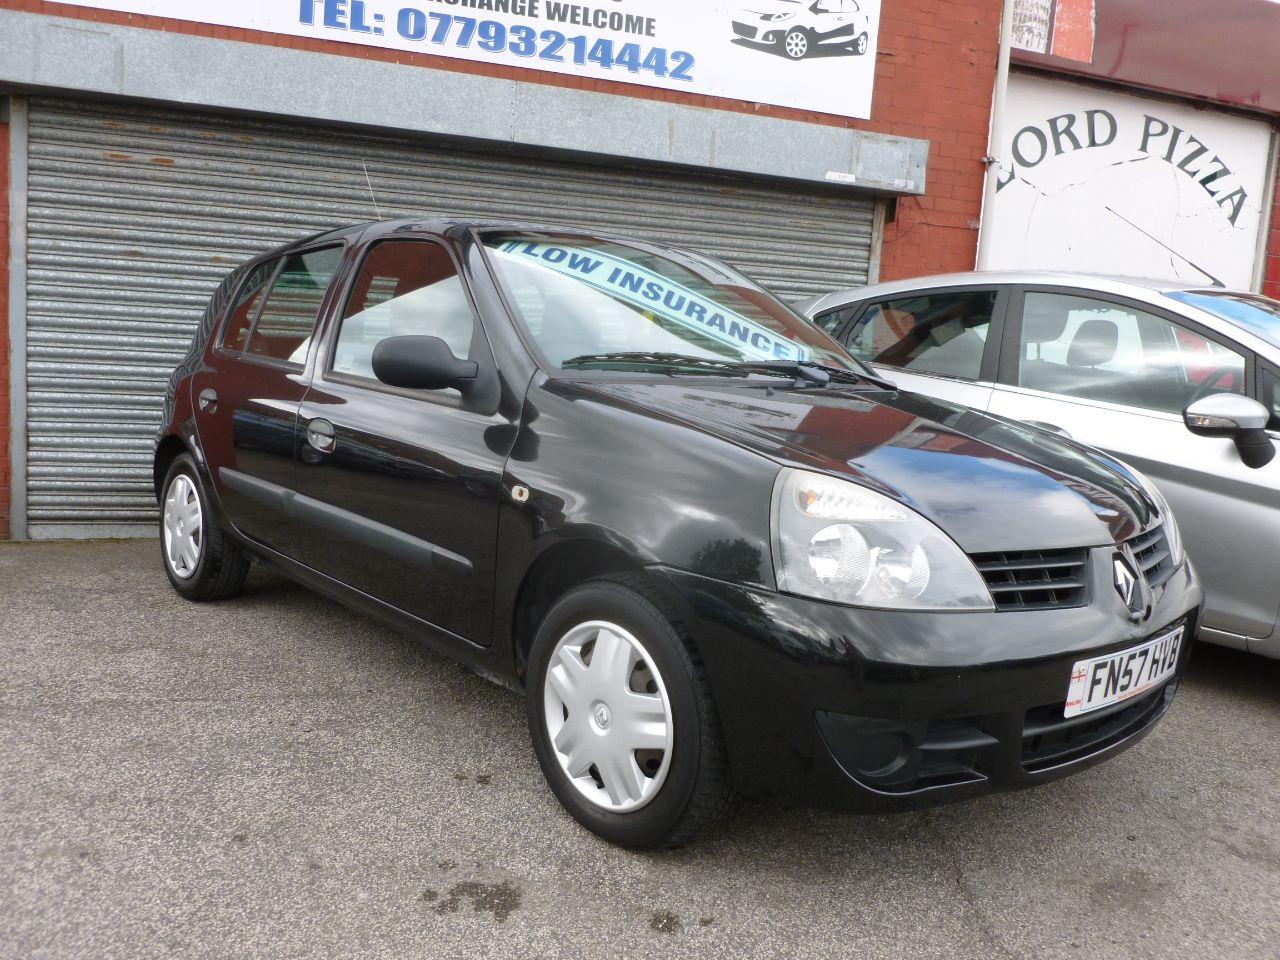 Renault Clio 1.2 Campus 2007 5dr Hatchback Petrol Black at AJM Autos Leeds Leeds